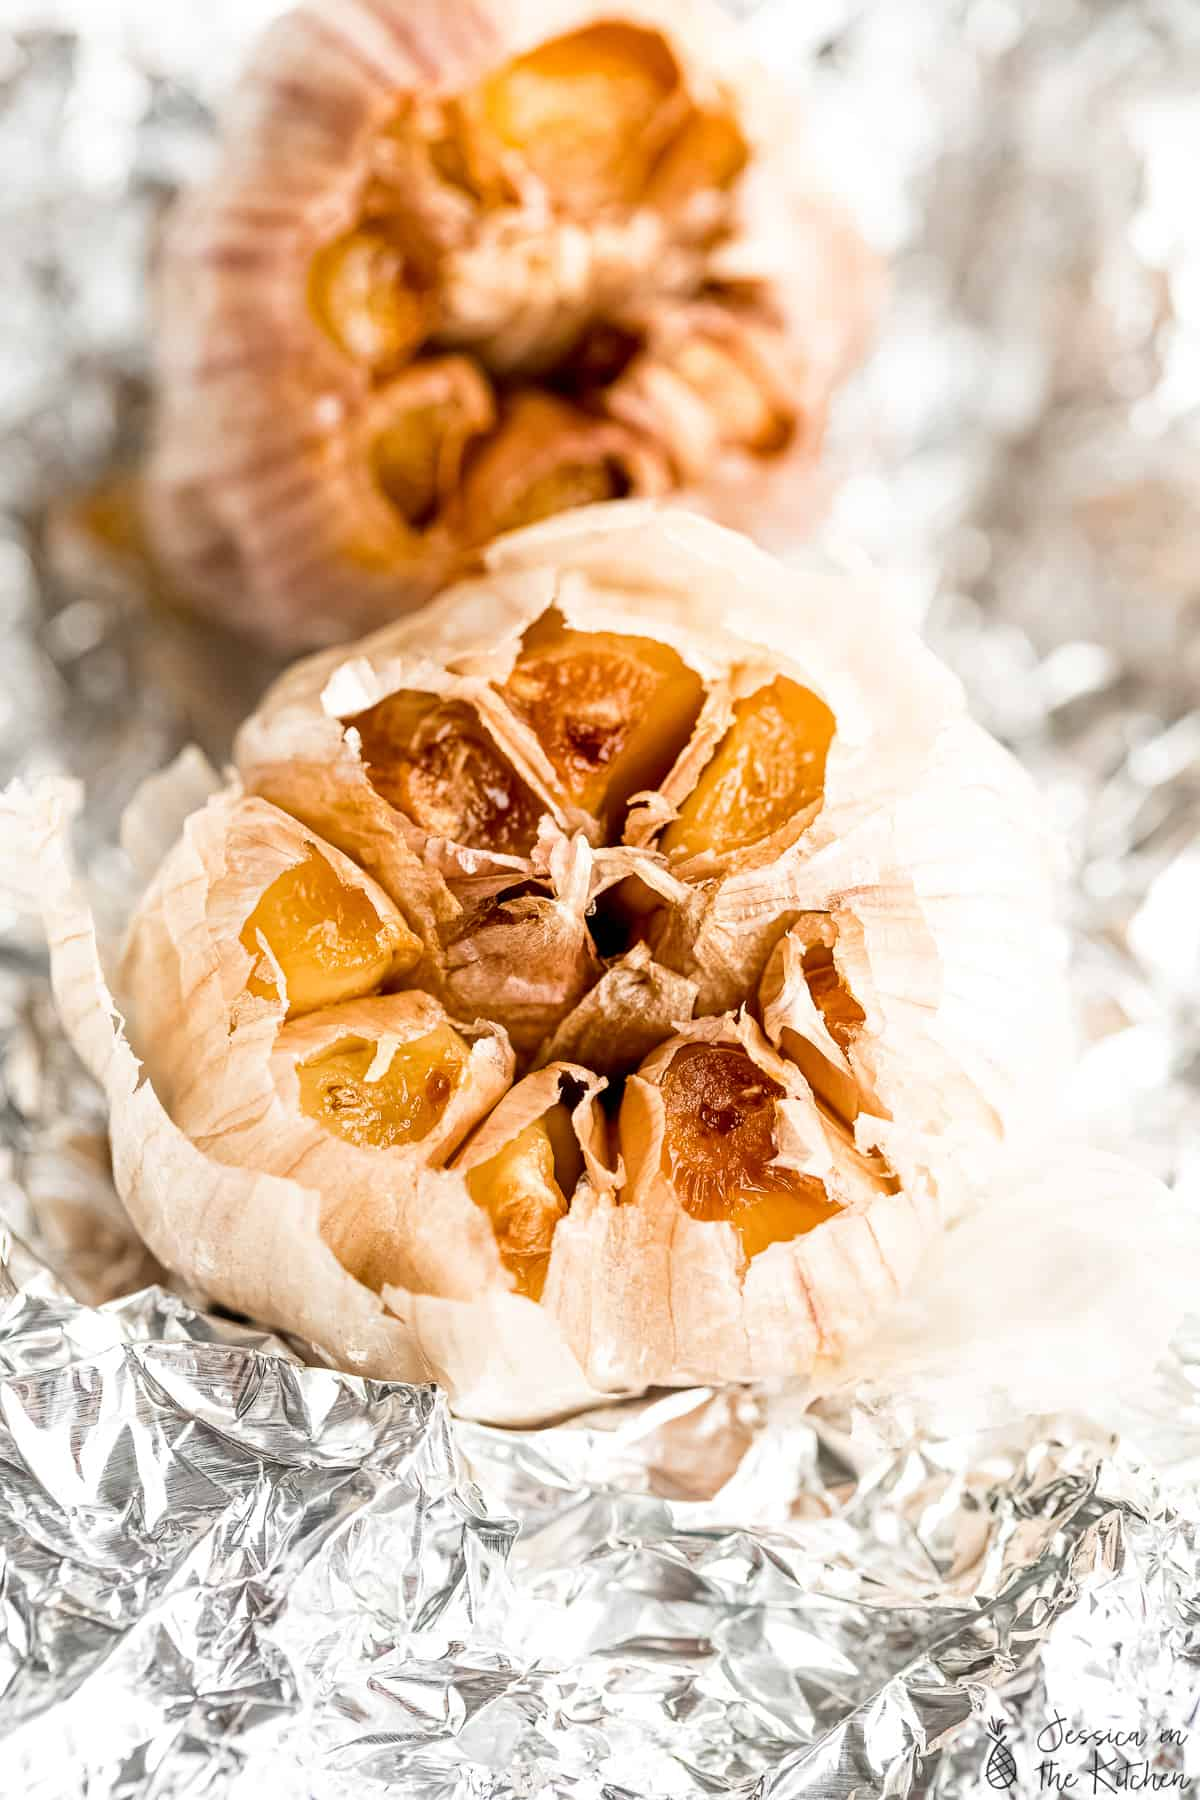 Overhead view of two roasted garlic bulbs on foil.